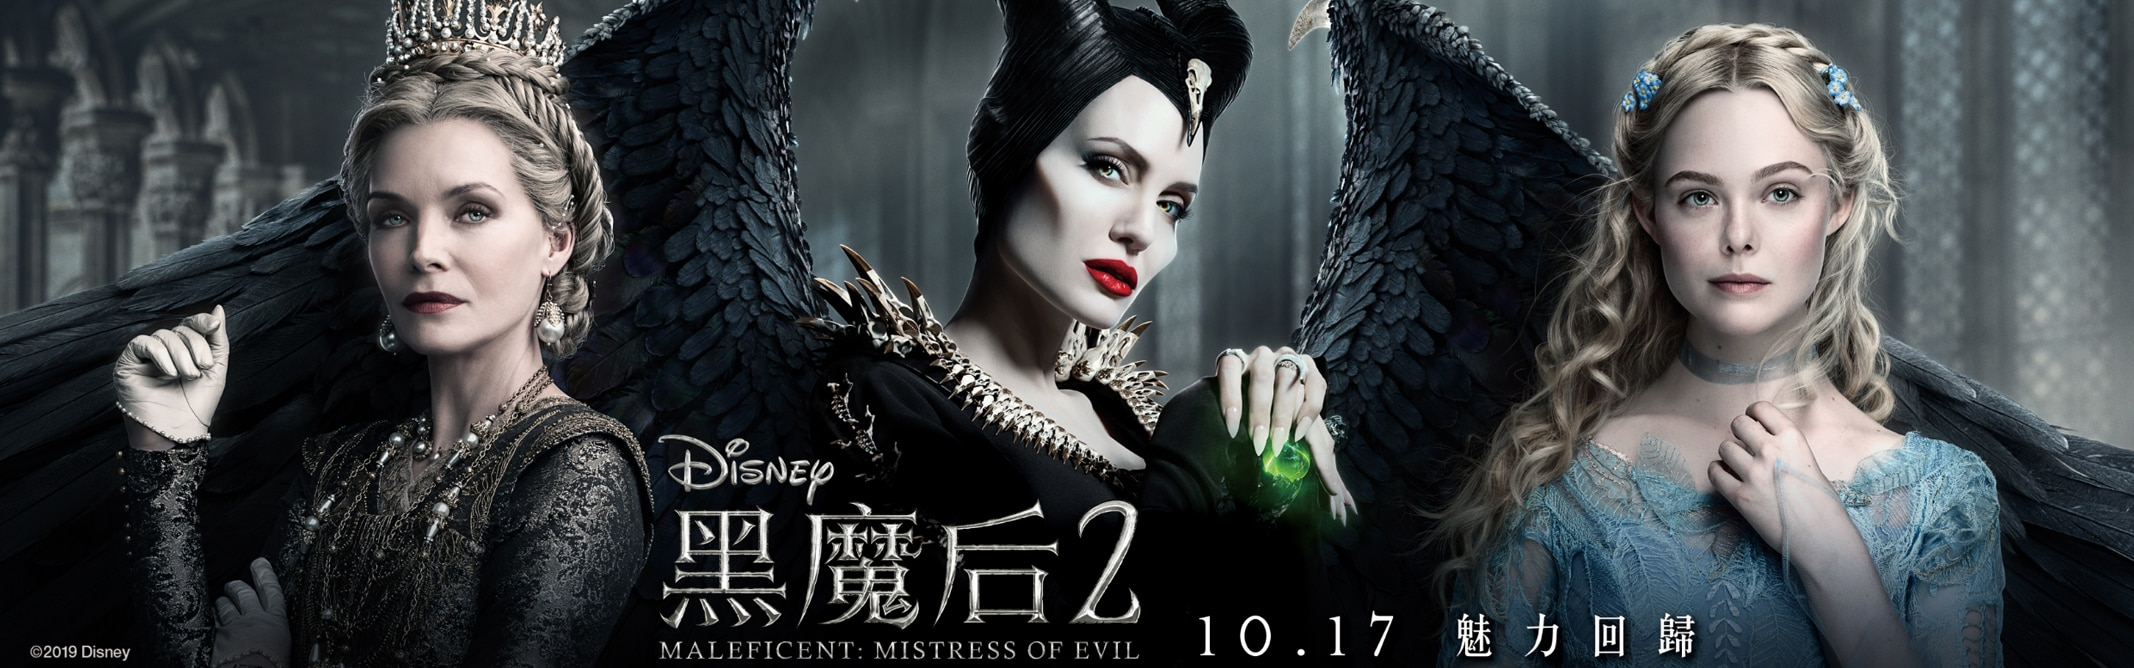 Maleficent: Mistress of Evil - Disney HK